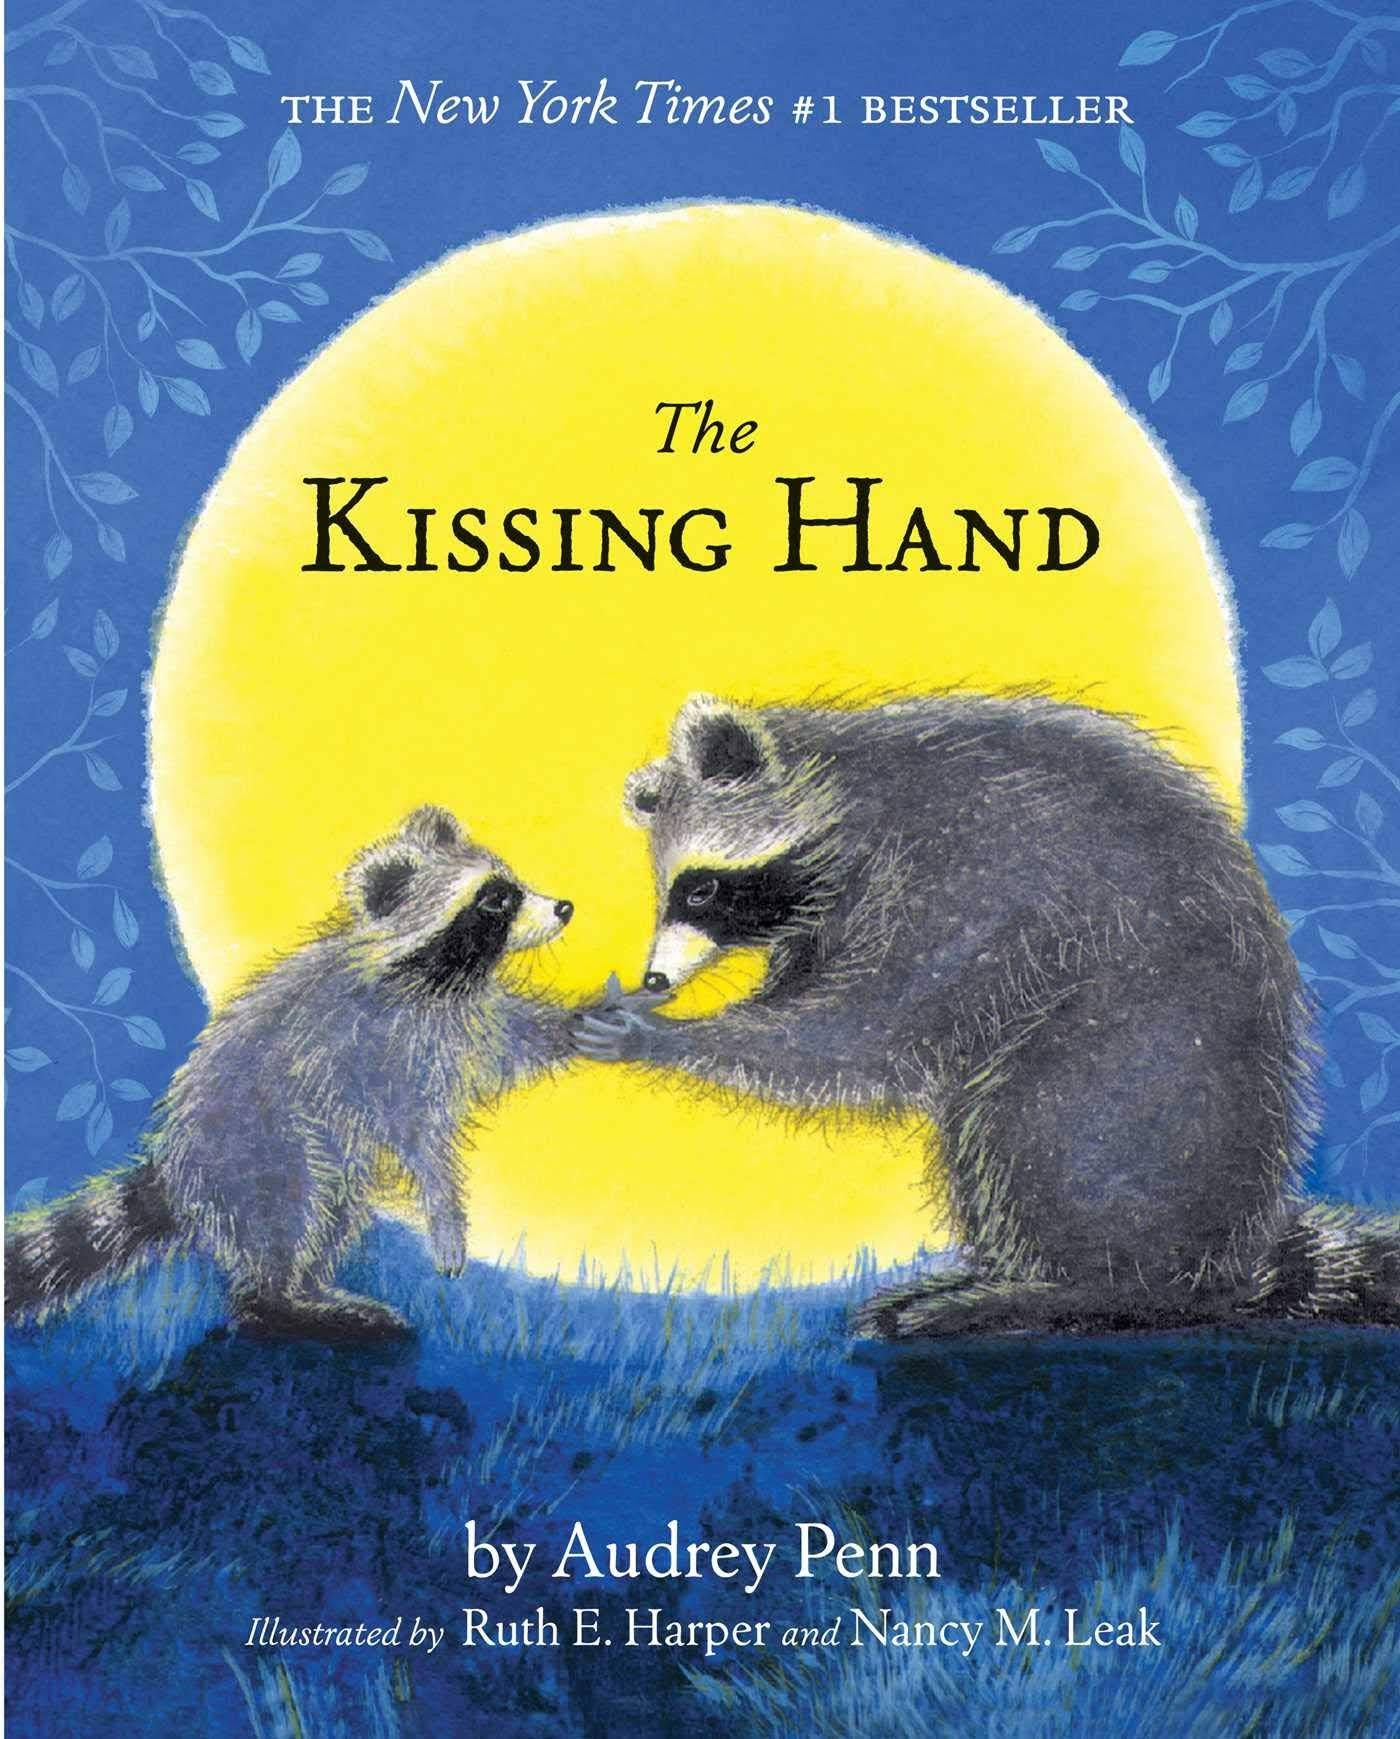 The Kissing Hand by Audrey Penn and illustrated by Ruth E. Harper and Nancy M. Leak